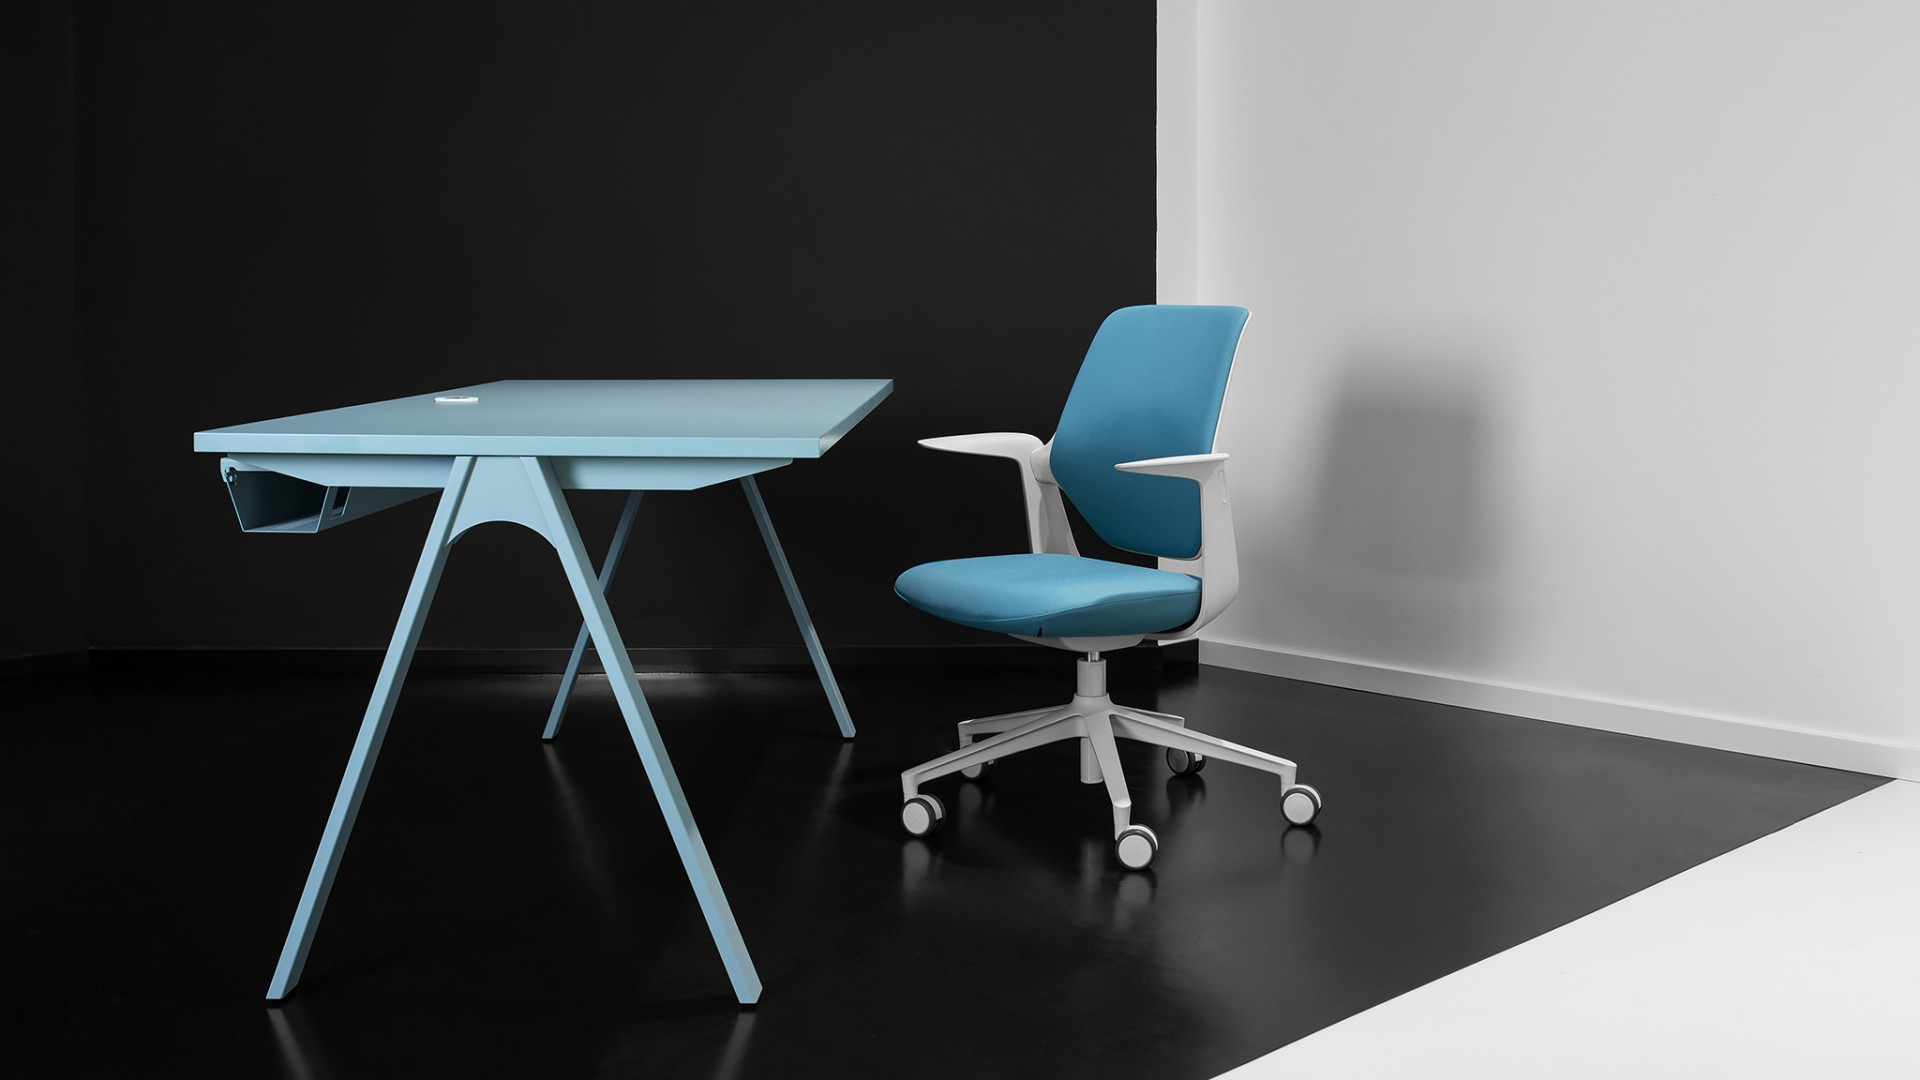 New in our offer! Balma MULTIBASE desk and folding table system